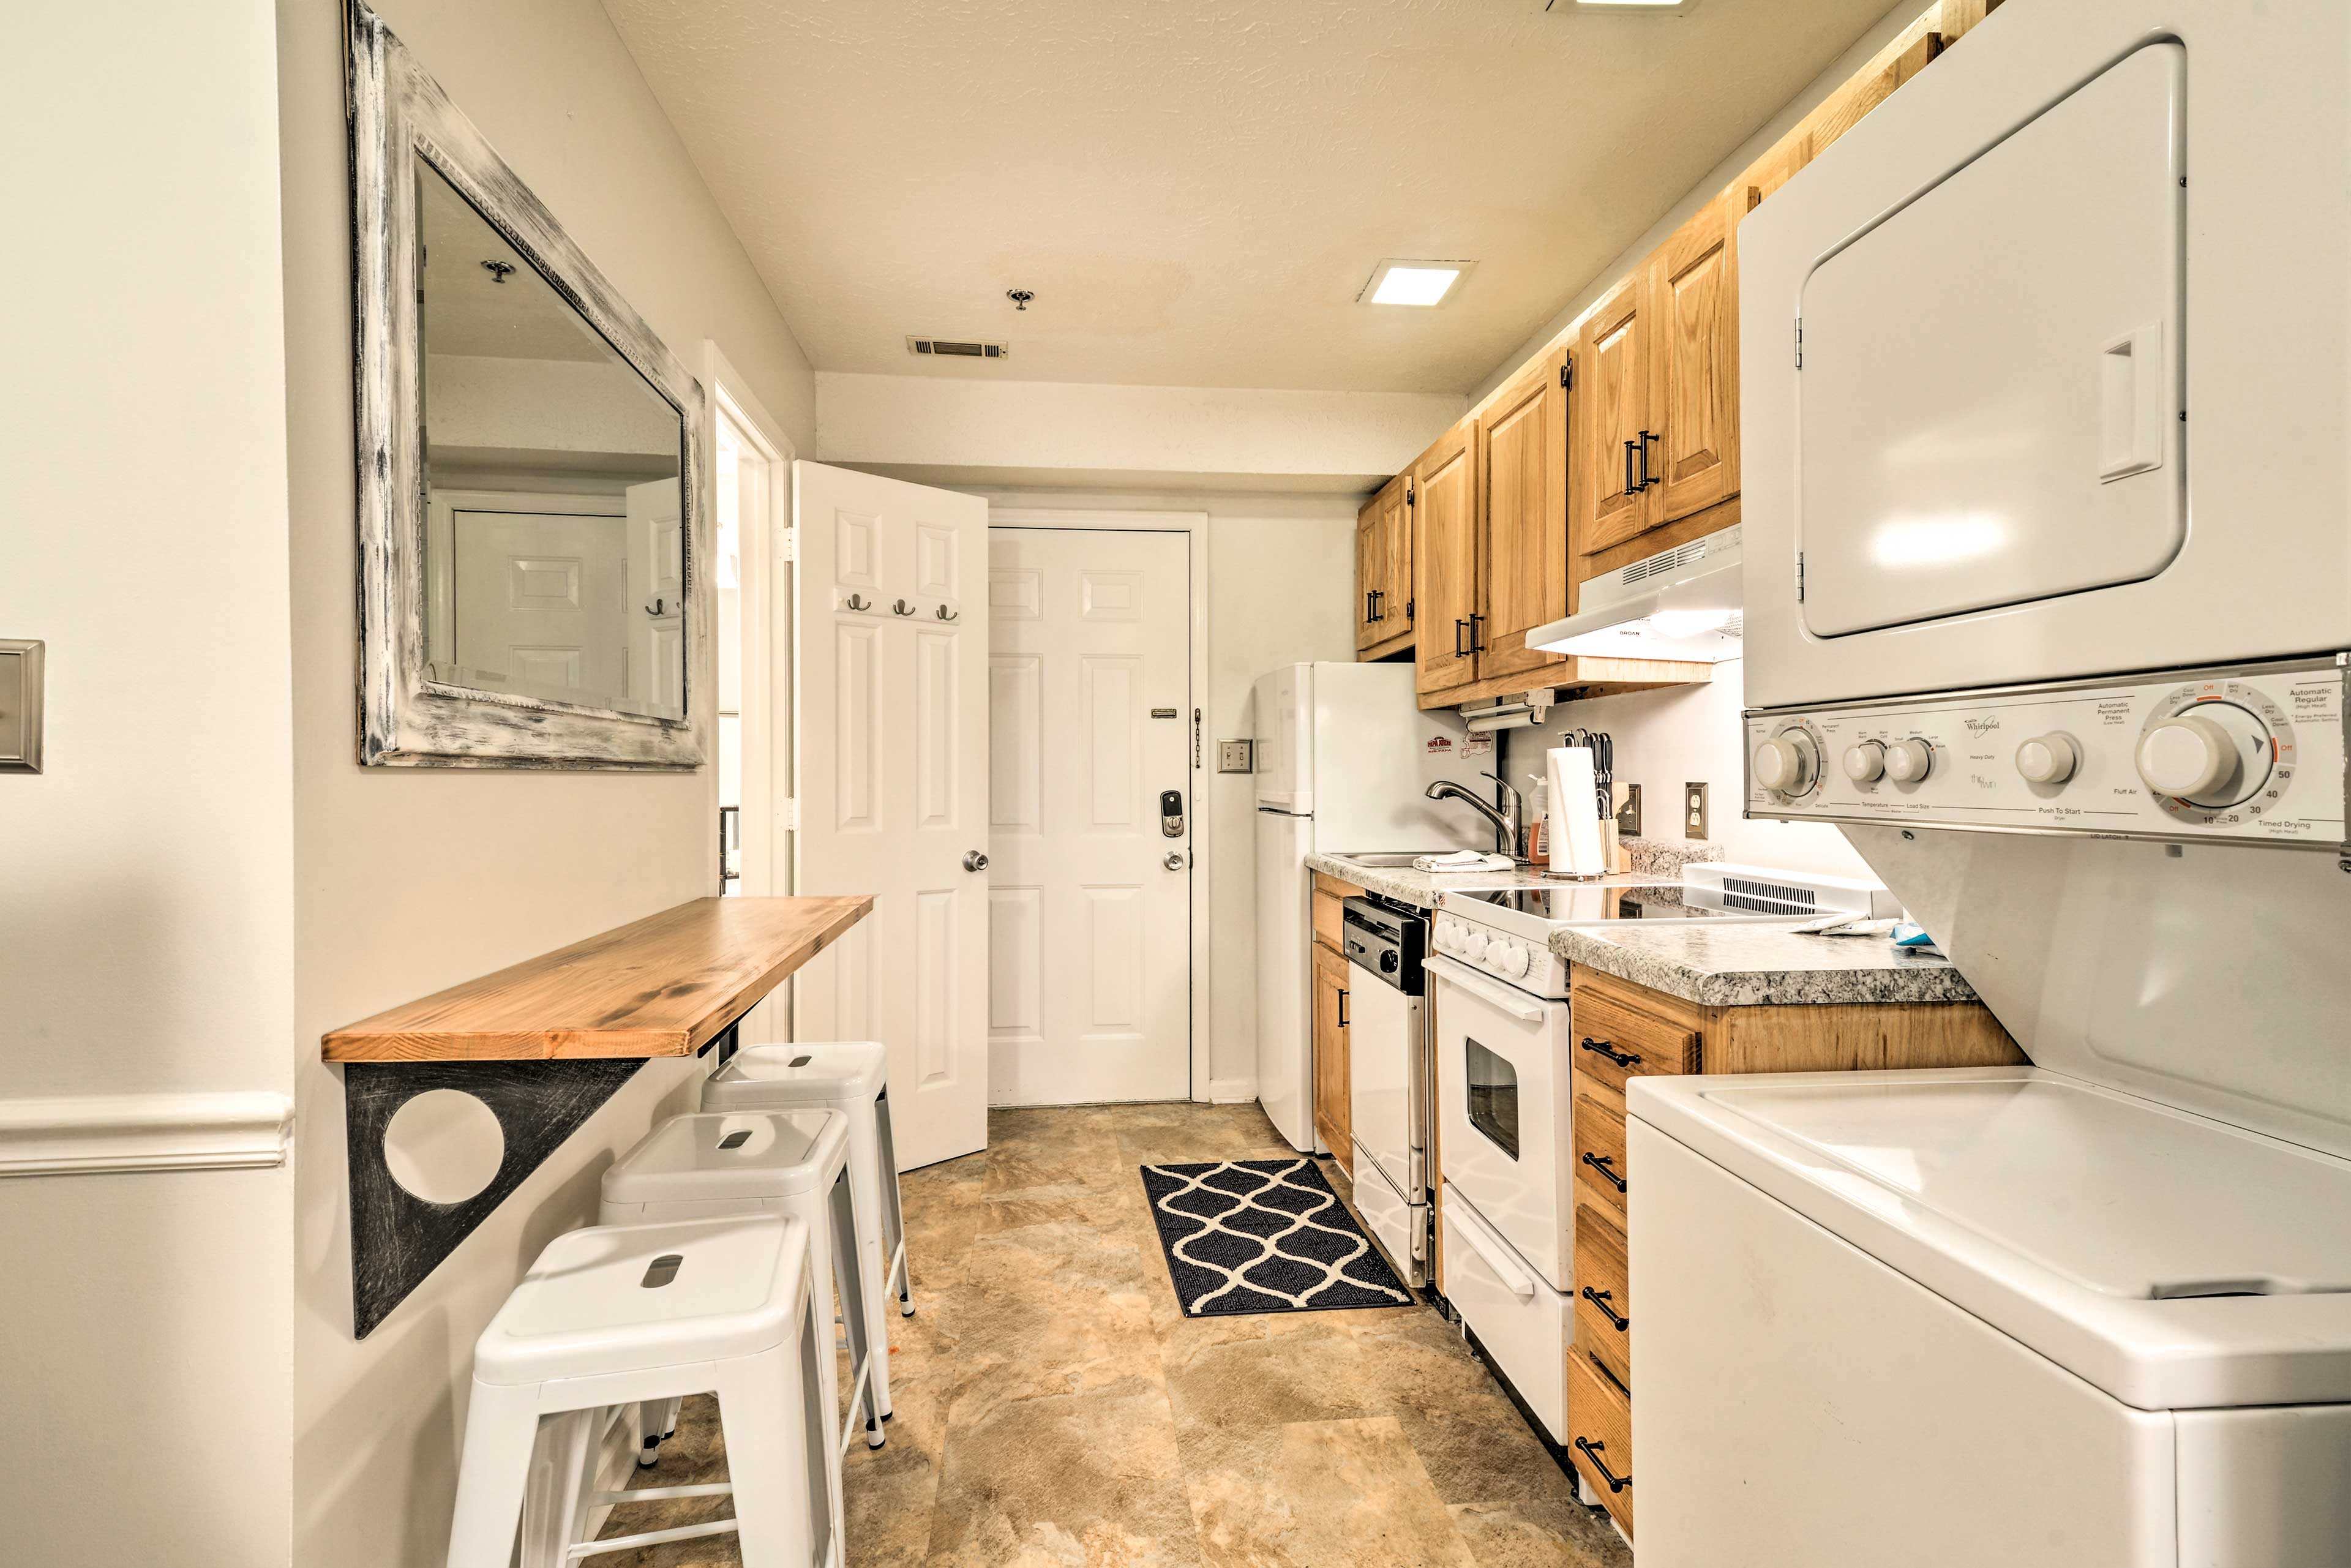 This condo is just 2 miles from Family Kingdom Amusement Park!